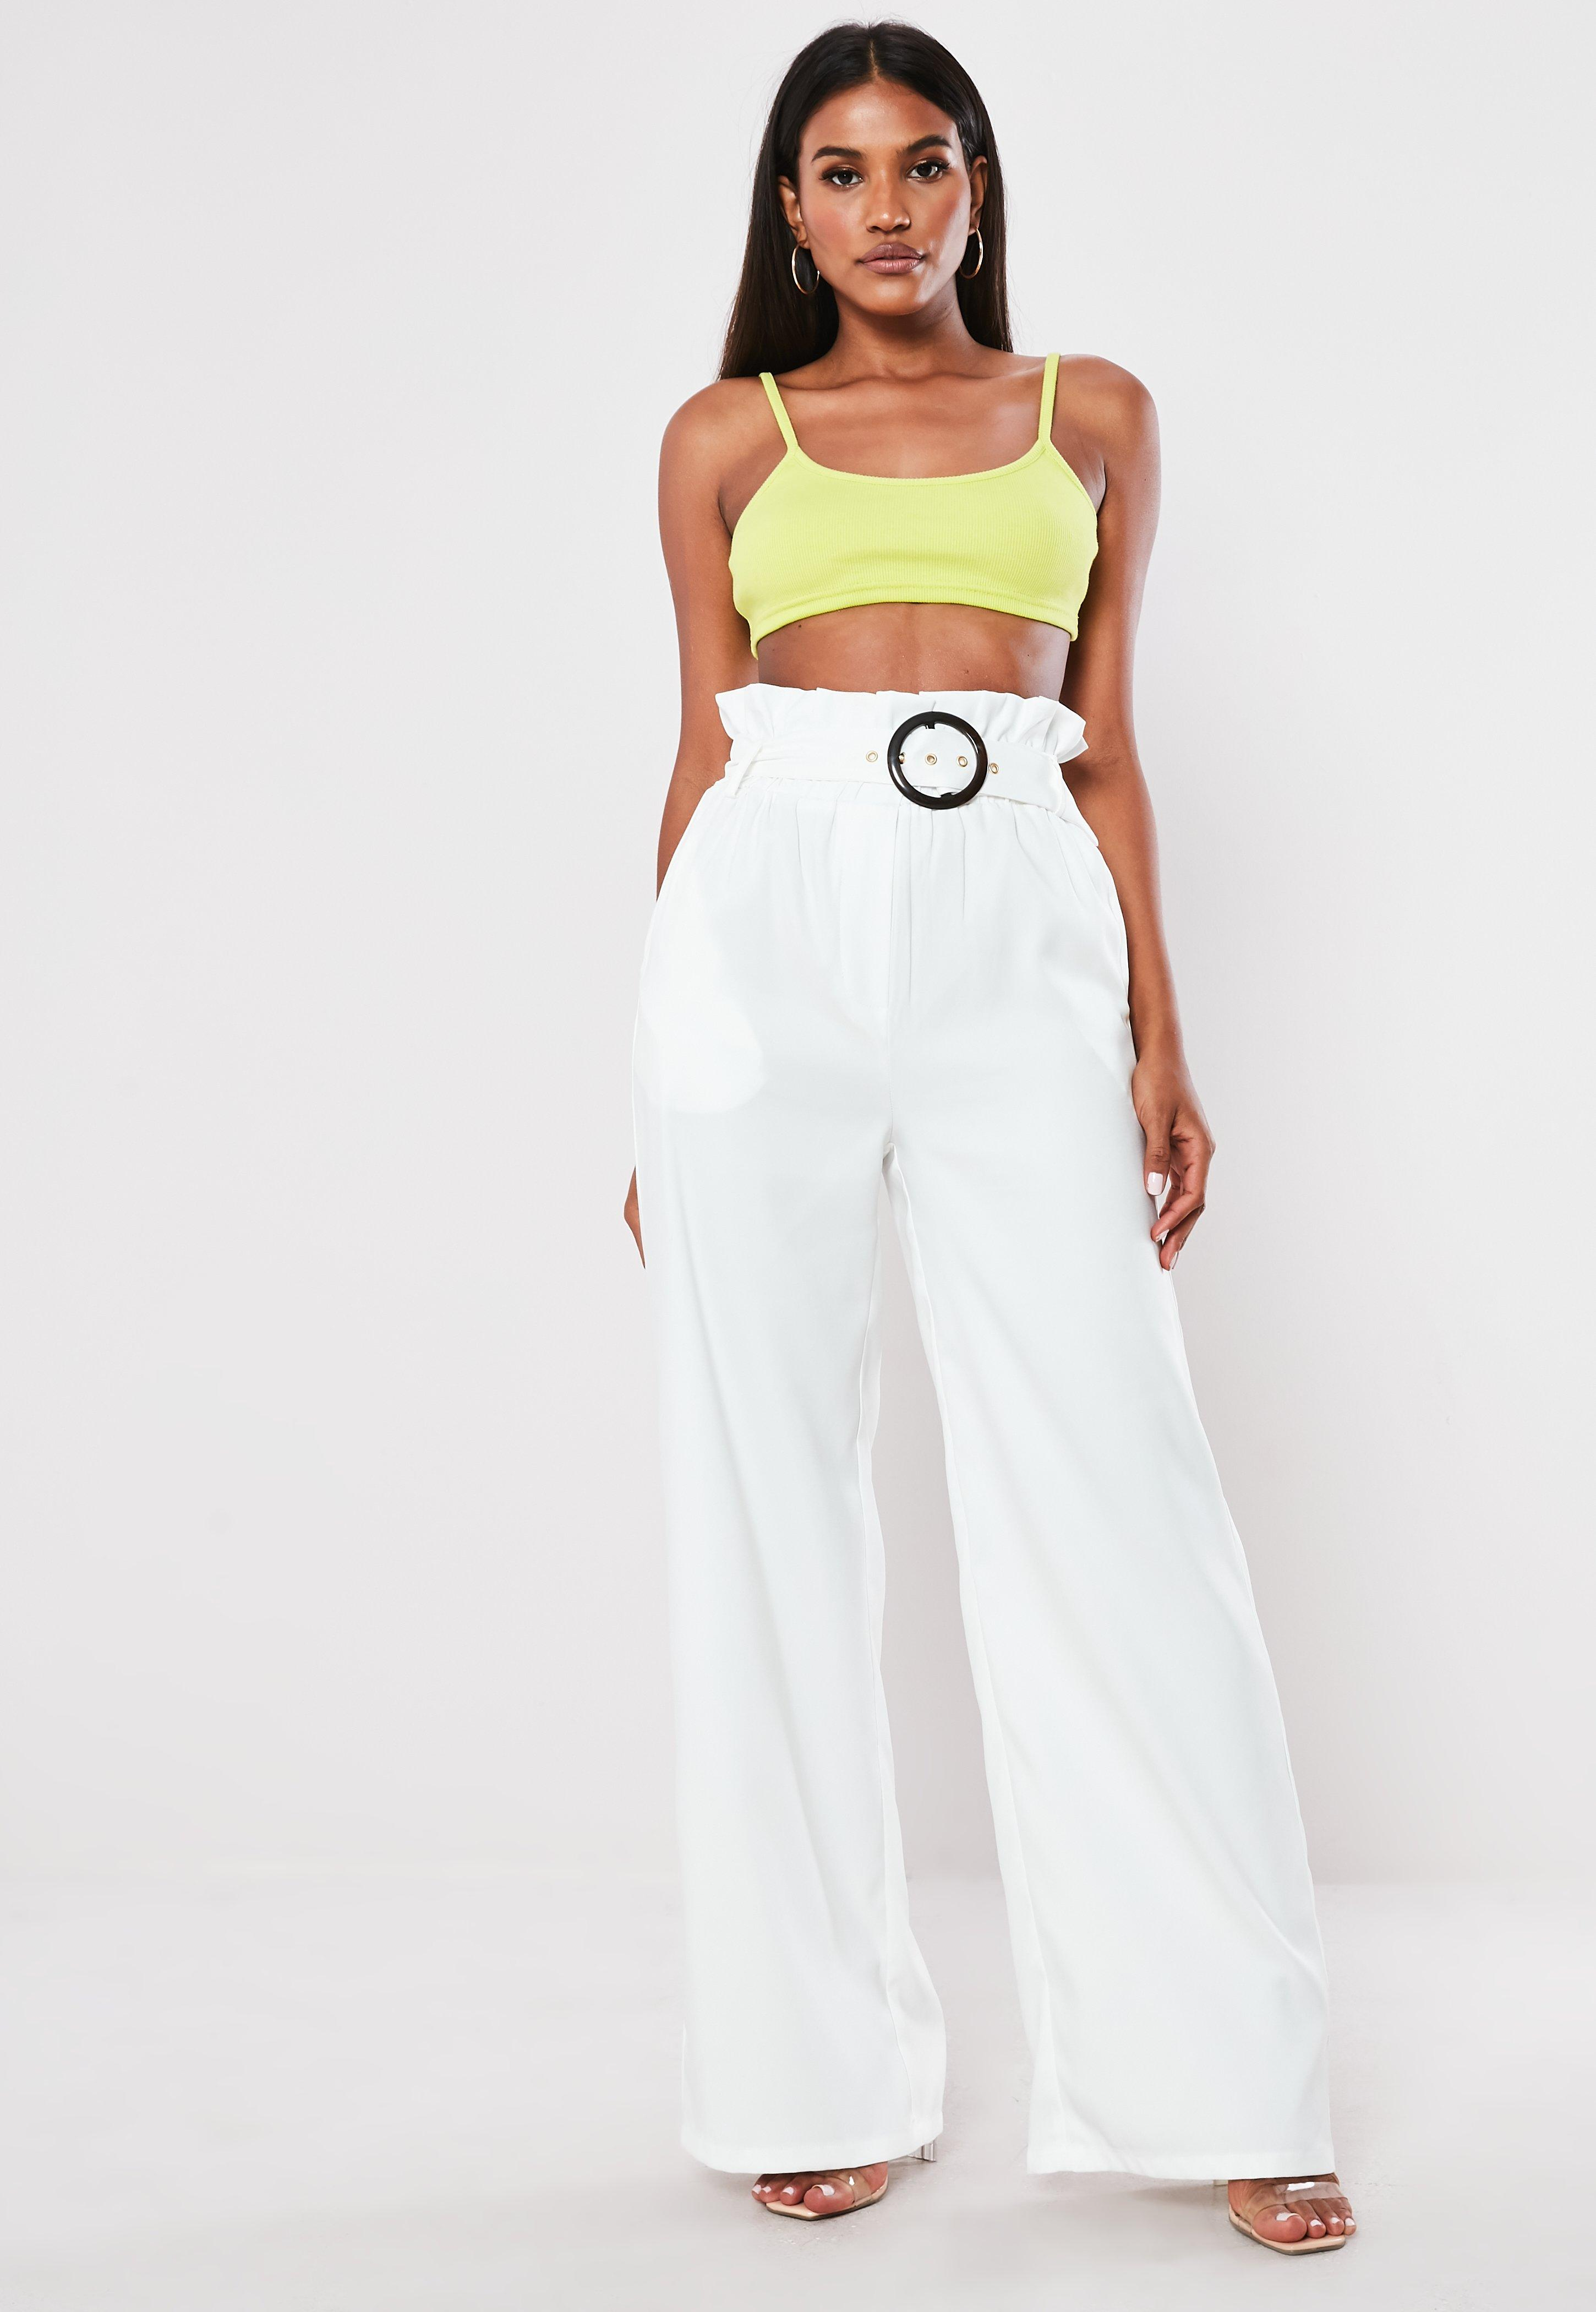 476c11b2e6f1 White Trousers | Women's White Trousers Online - Missguided